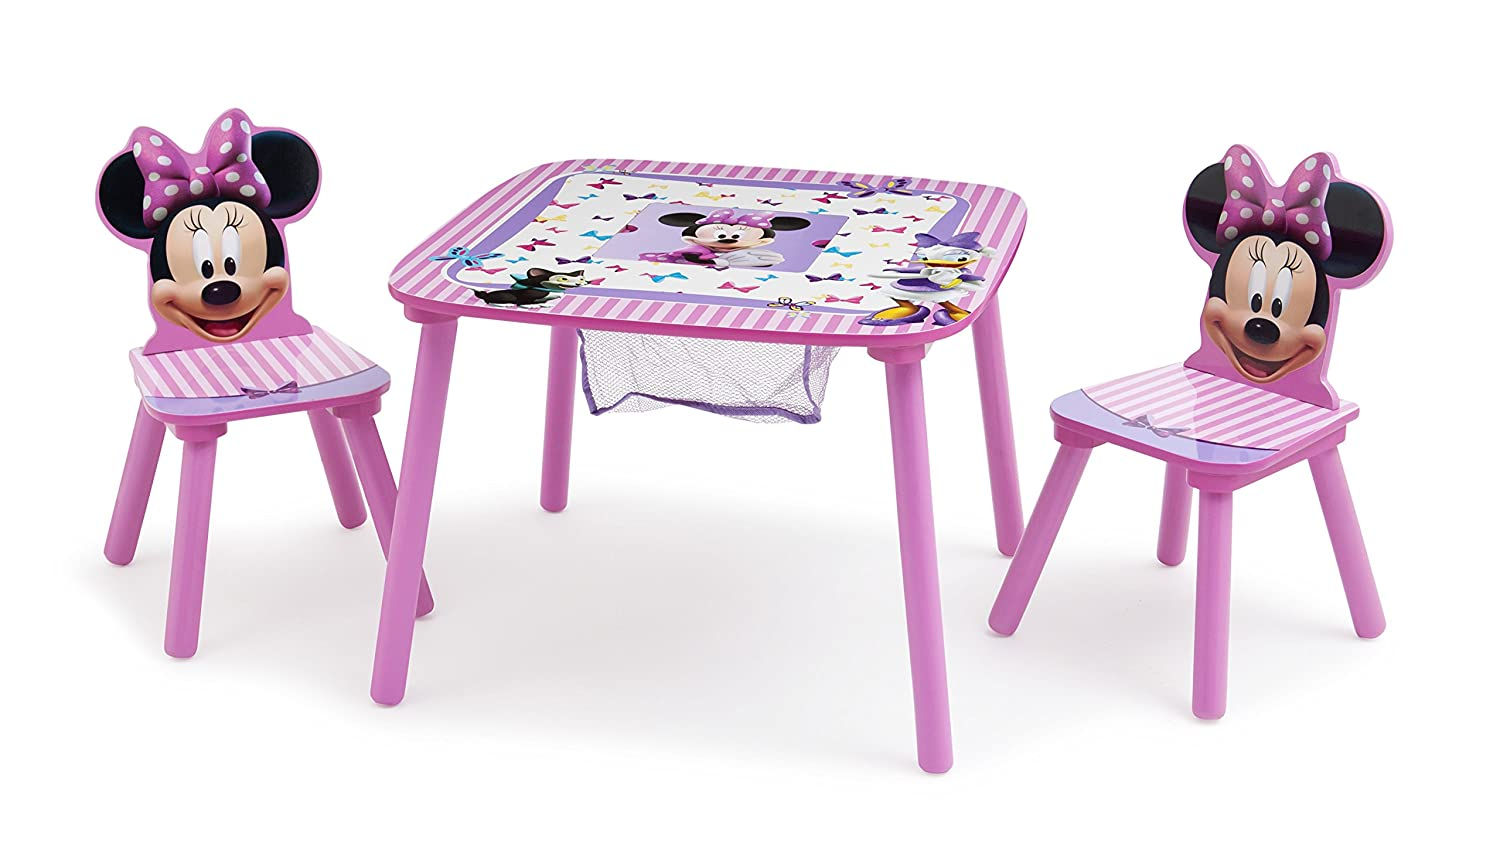 Outstanding Disney Minnie Mouse Storage Table And Chairs Set Delta Children Pdpeps Interior Chair Design Pdpepsorg